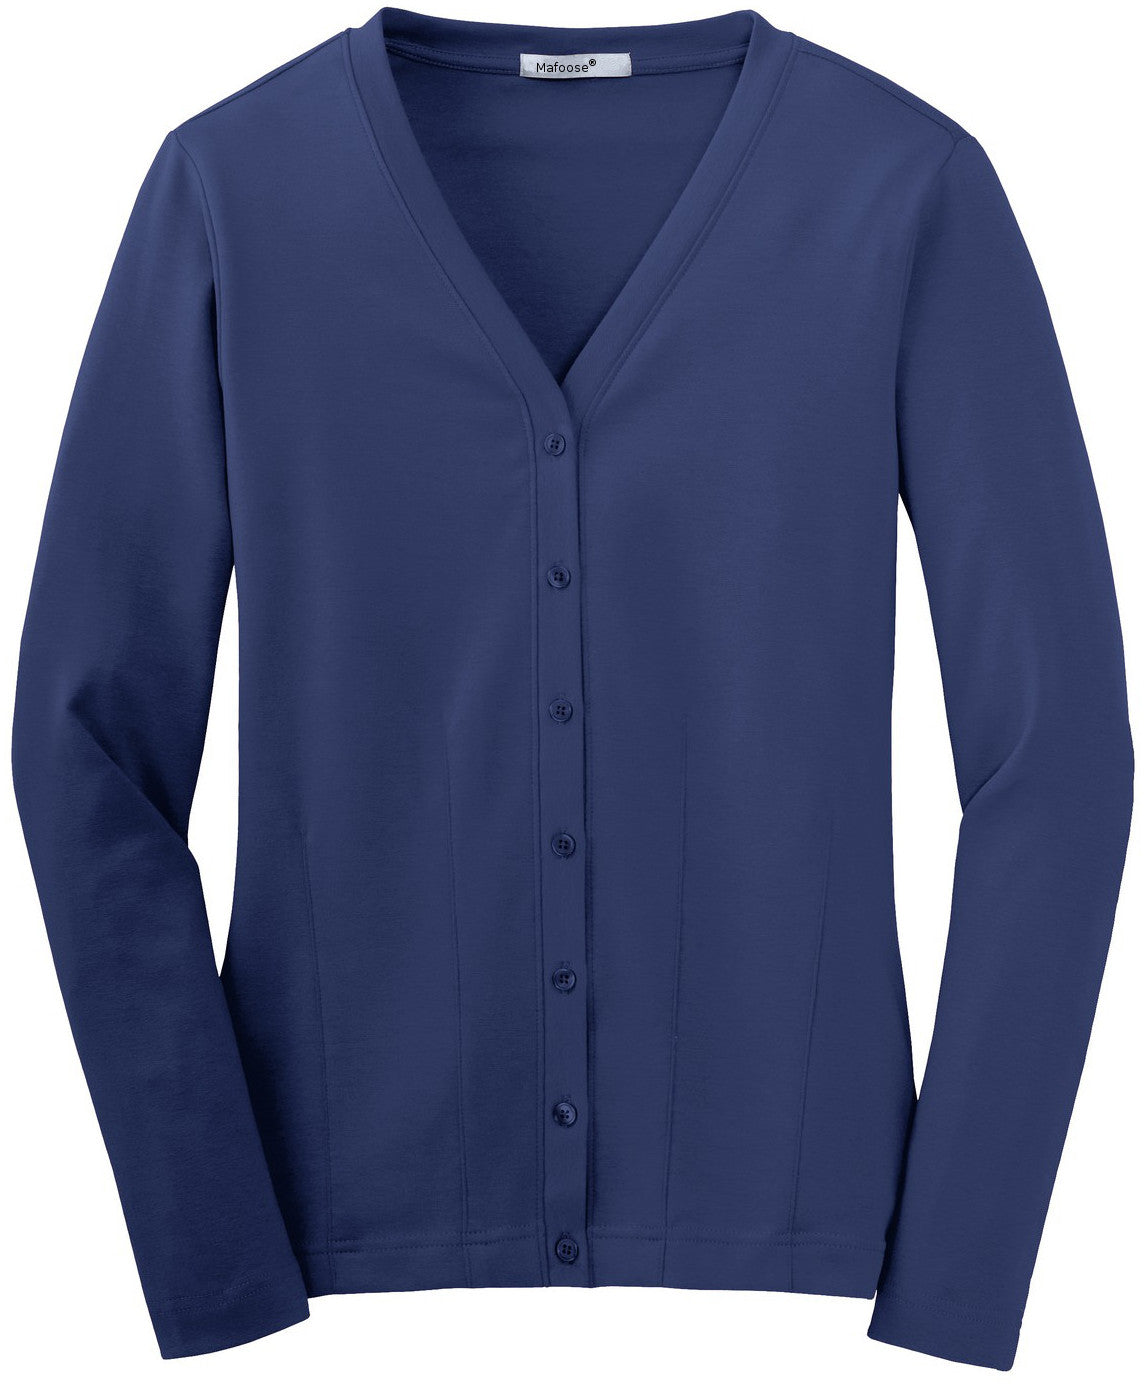 Mafoose Women's Stretch Cotton Cardigan Sapphire Blue-Front